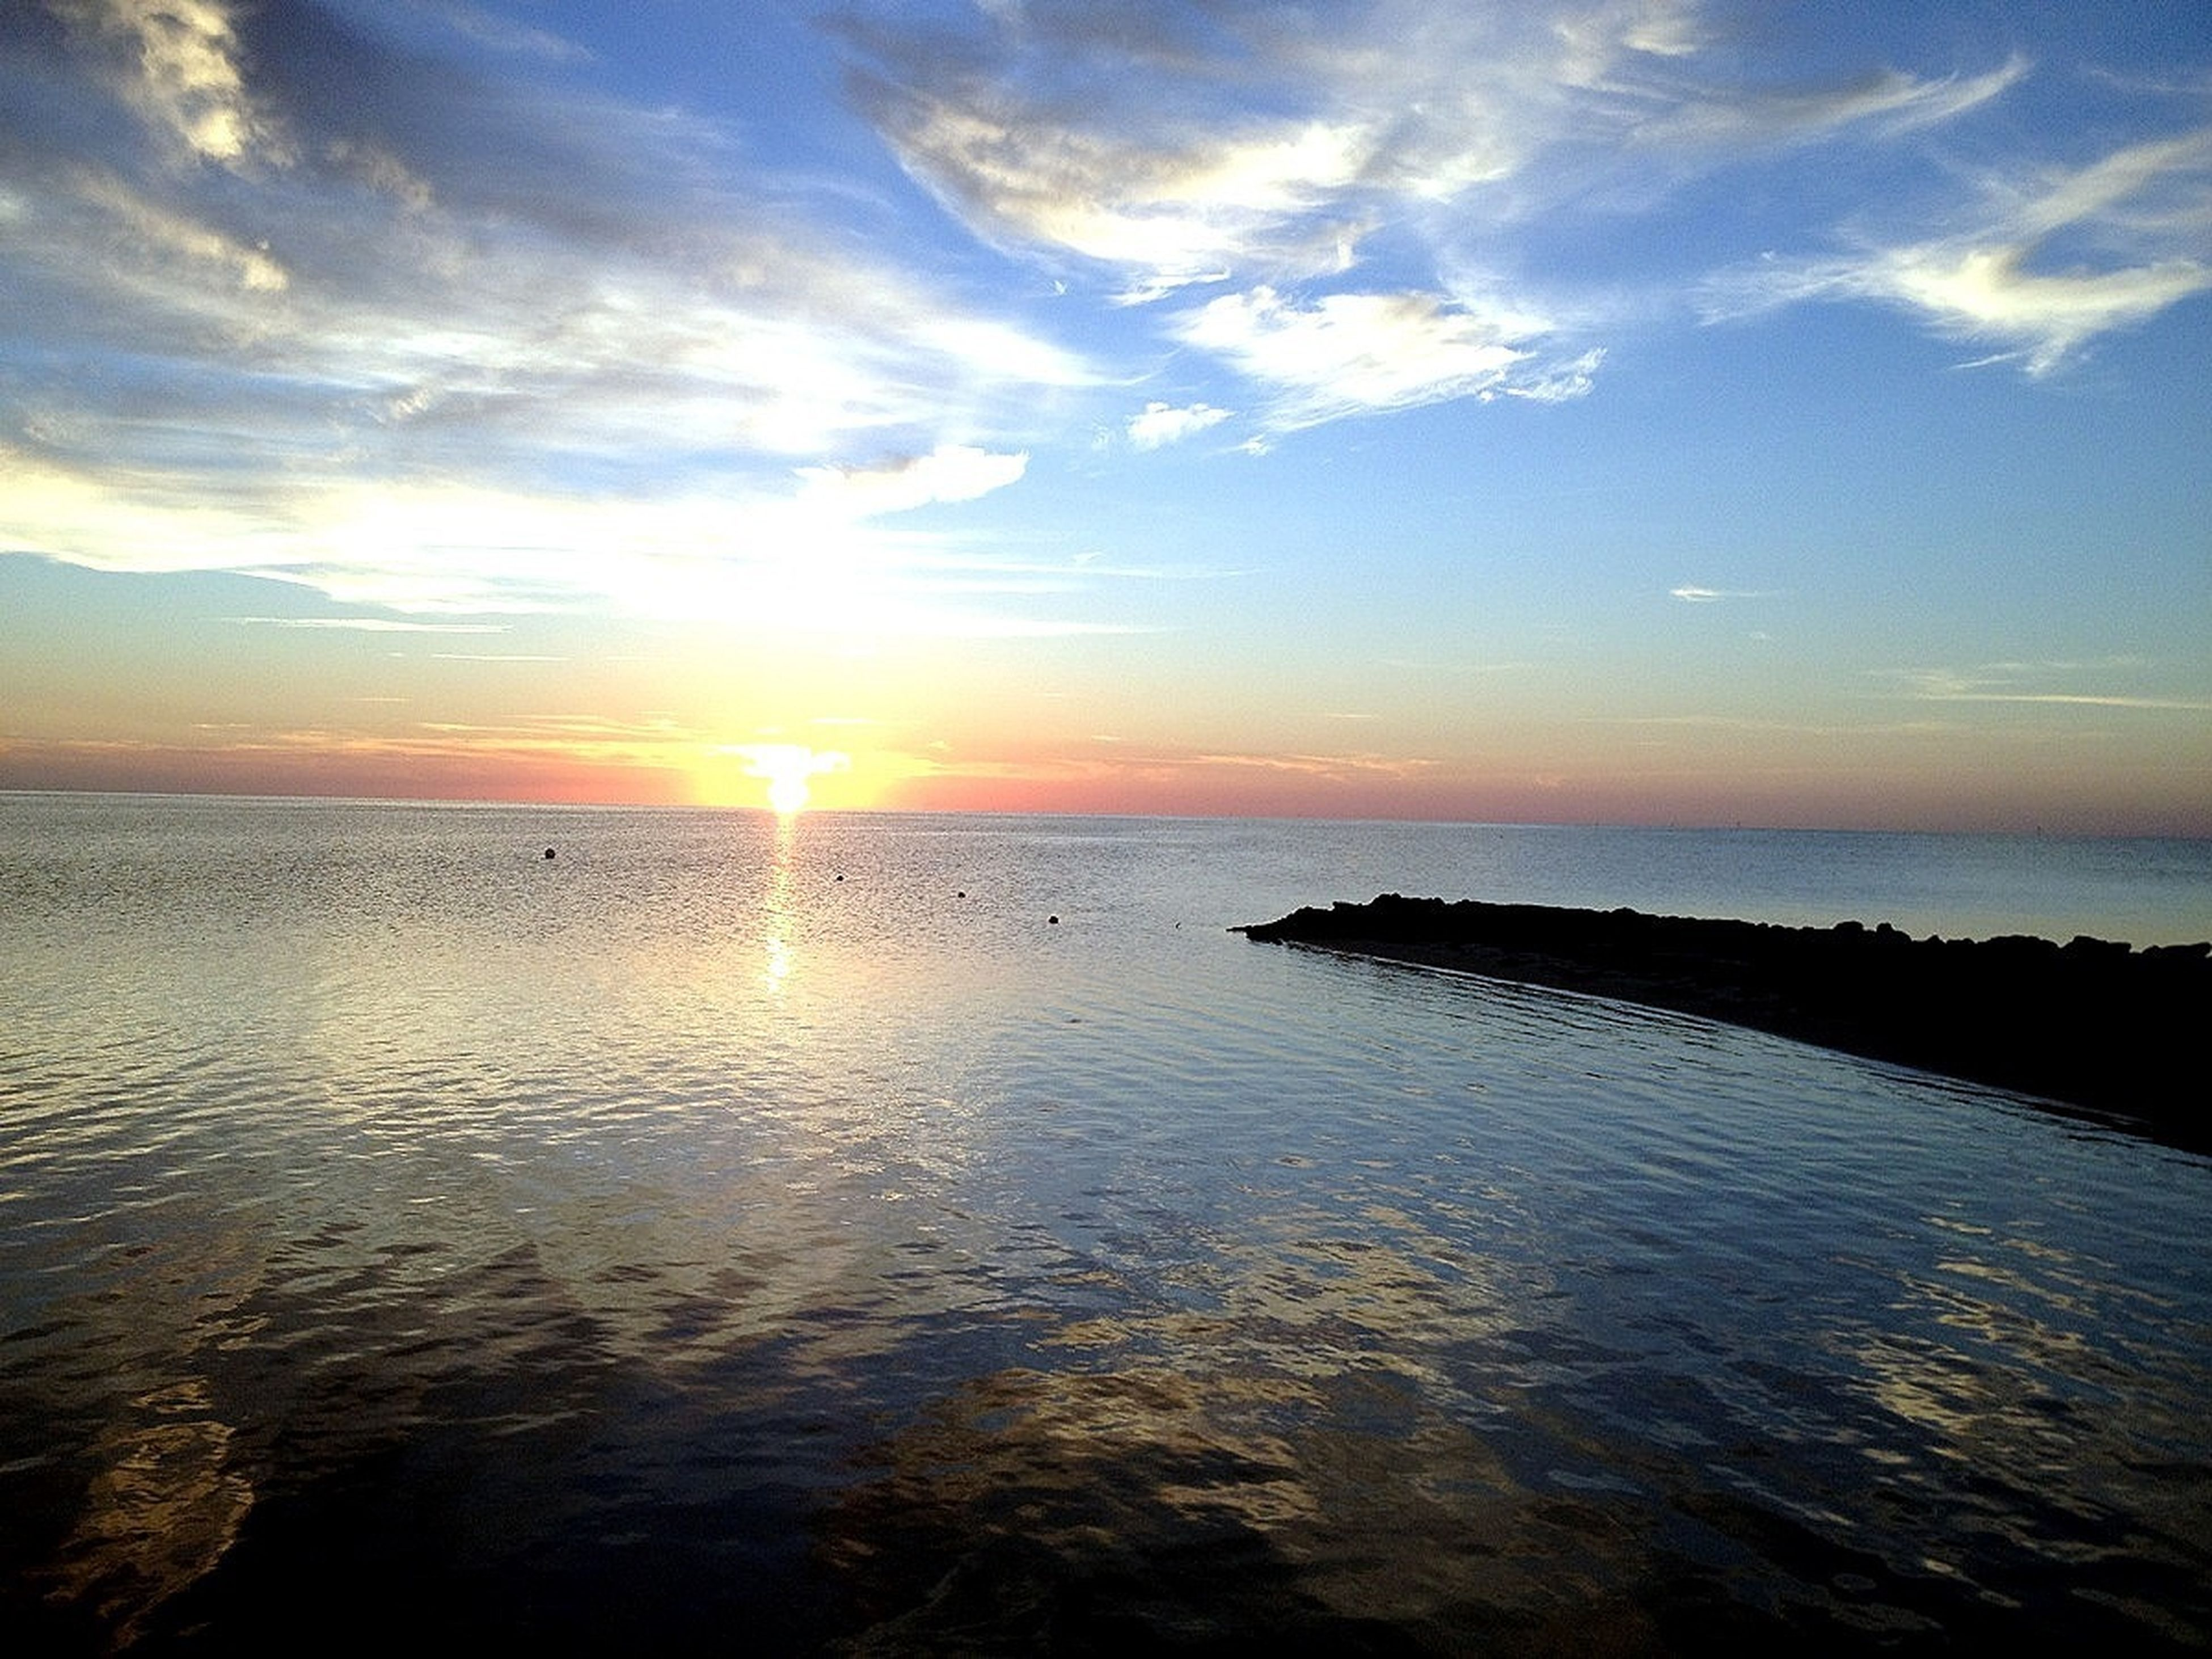 water, sea, sunset, horizon over water, tranquil scene, scenics, tranquility, sky, beauty in nature, reflection, sun, idyllic, nature, waterfront, cloud - sky, cloud, sunlight, rippled, orange color, silhouette